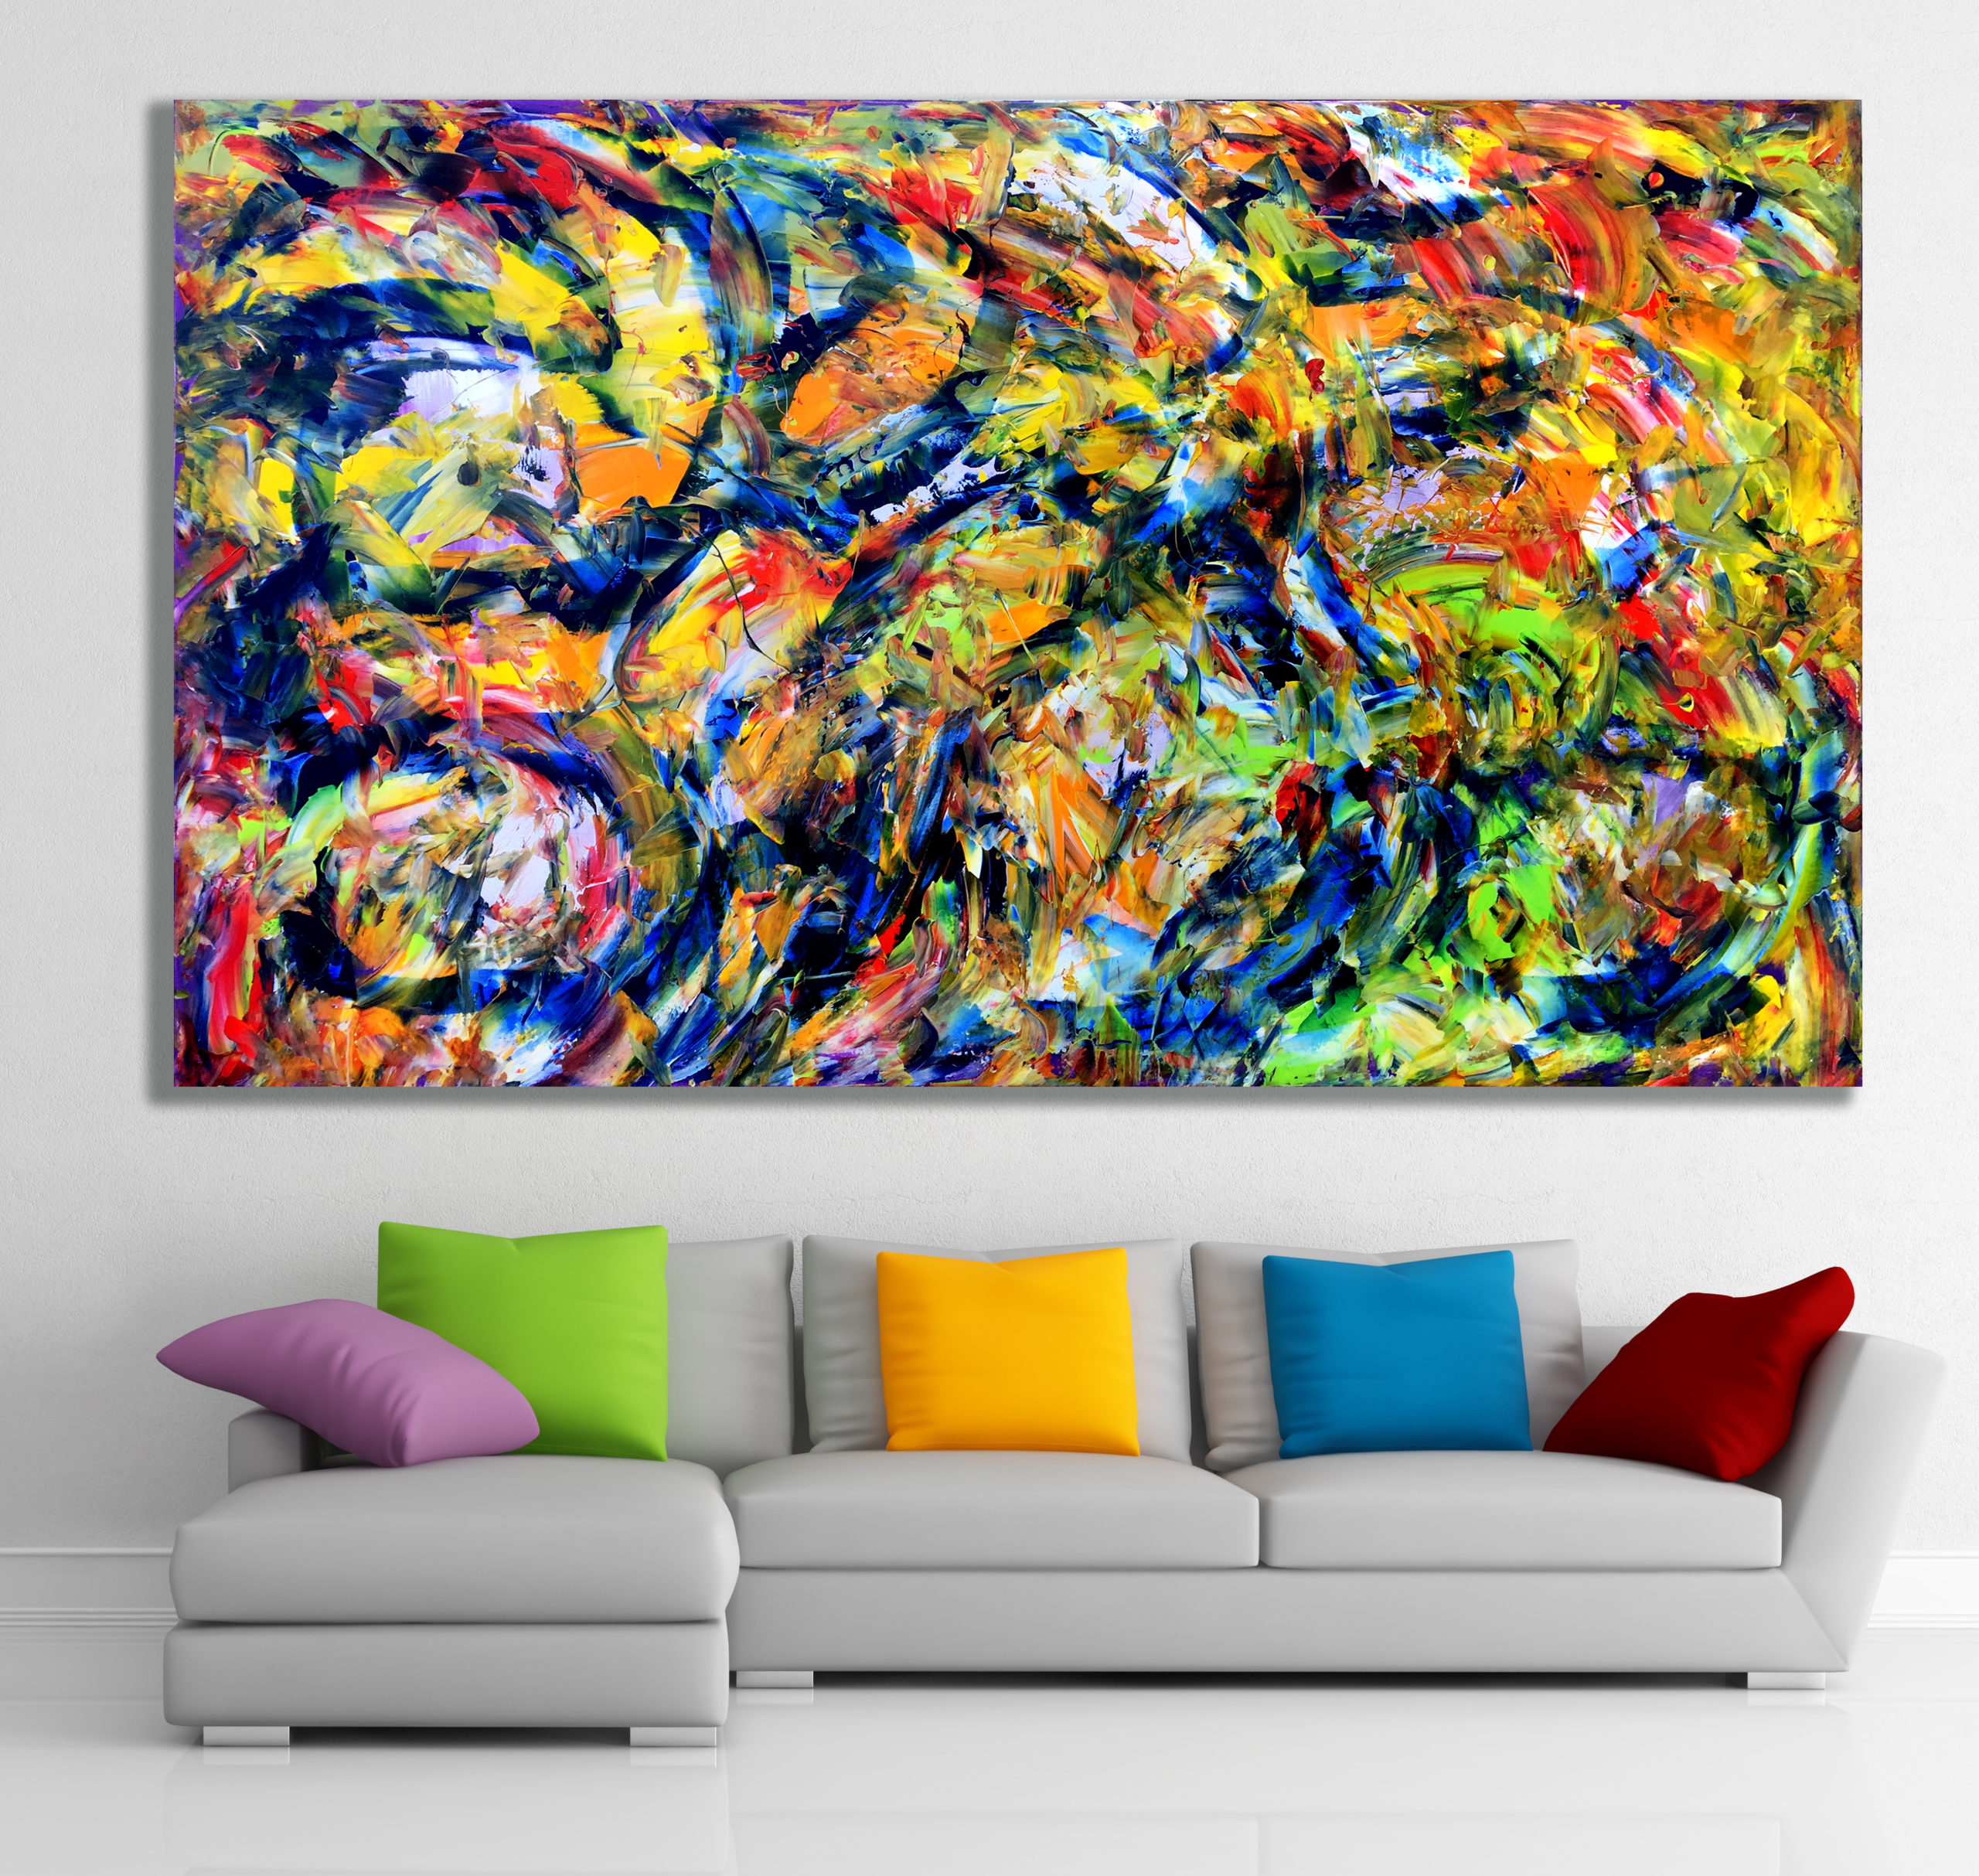 Tethered Emotions - Abstract Expressionism by Estelle Asmodelle